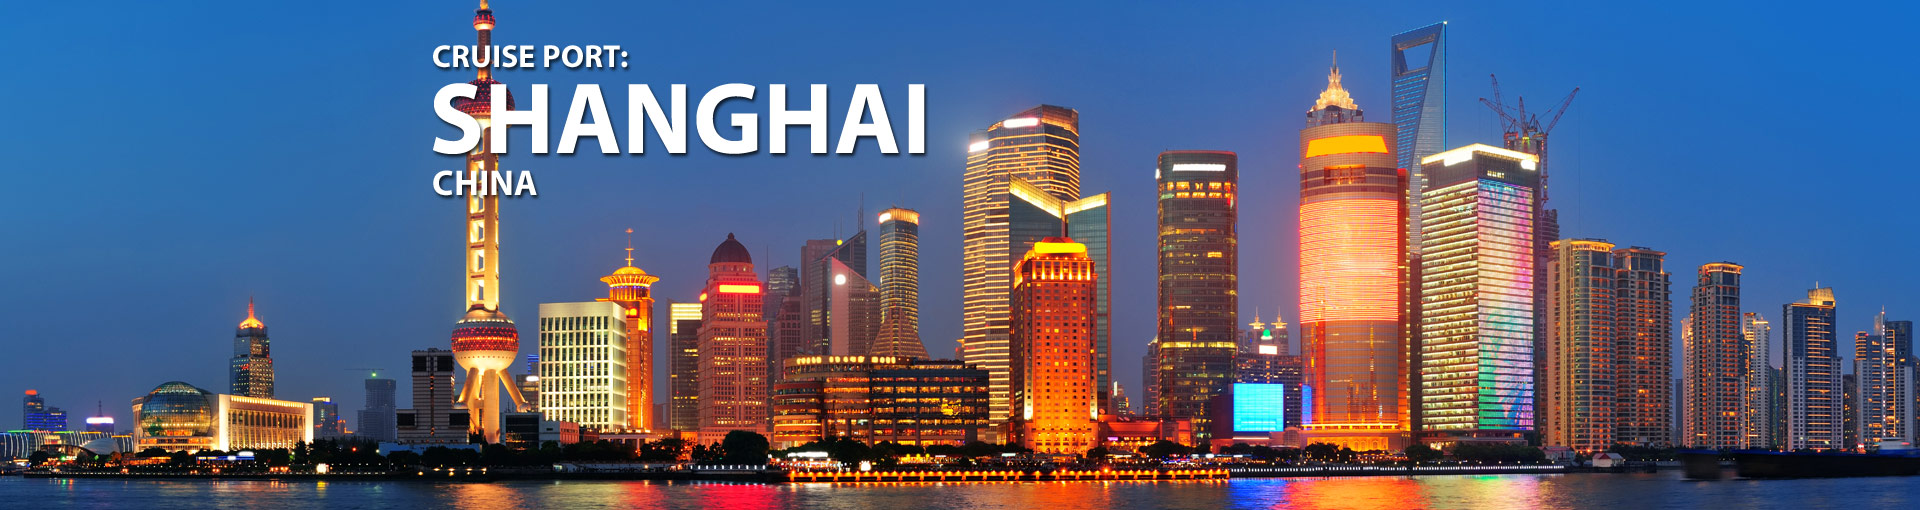 Cruises from Shanghai, China